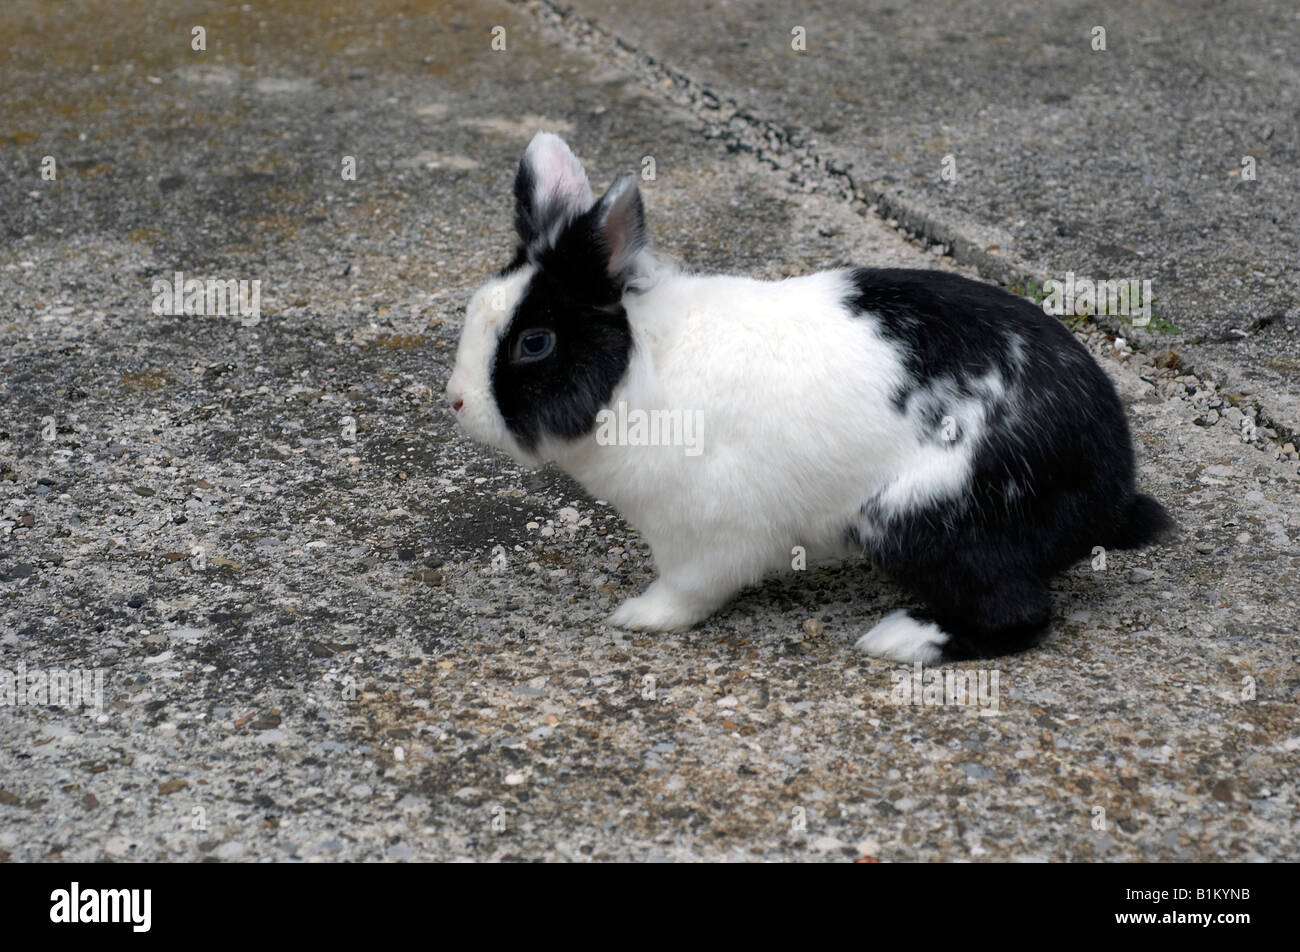 Pet Rabbit Run Stock Photos & Pet Rabbit Run Stock Images - Alamy